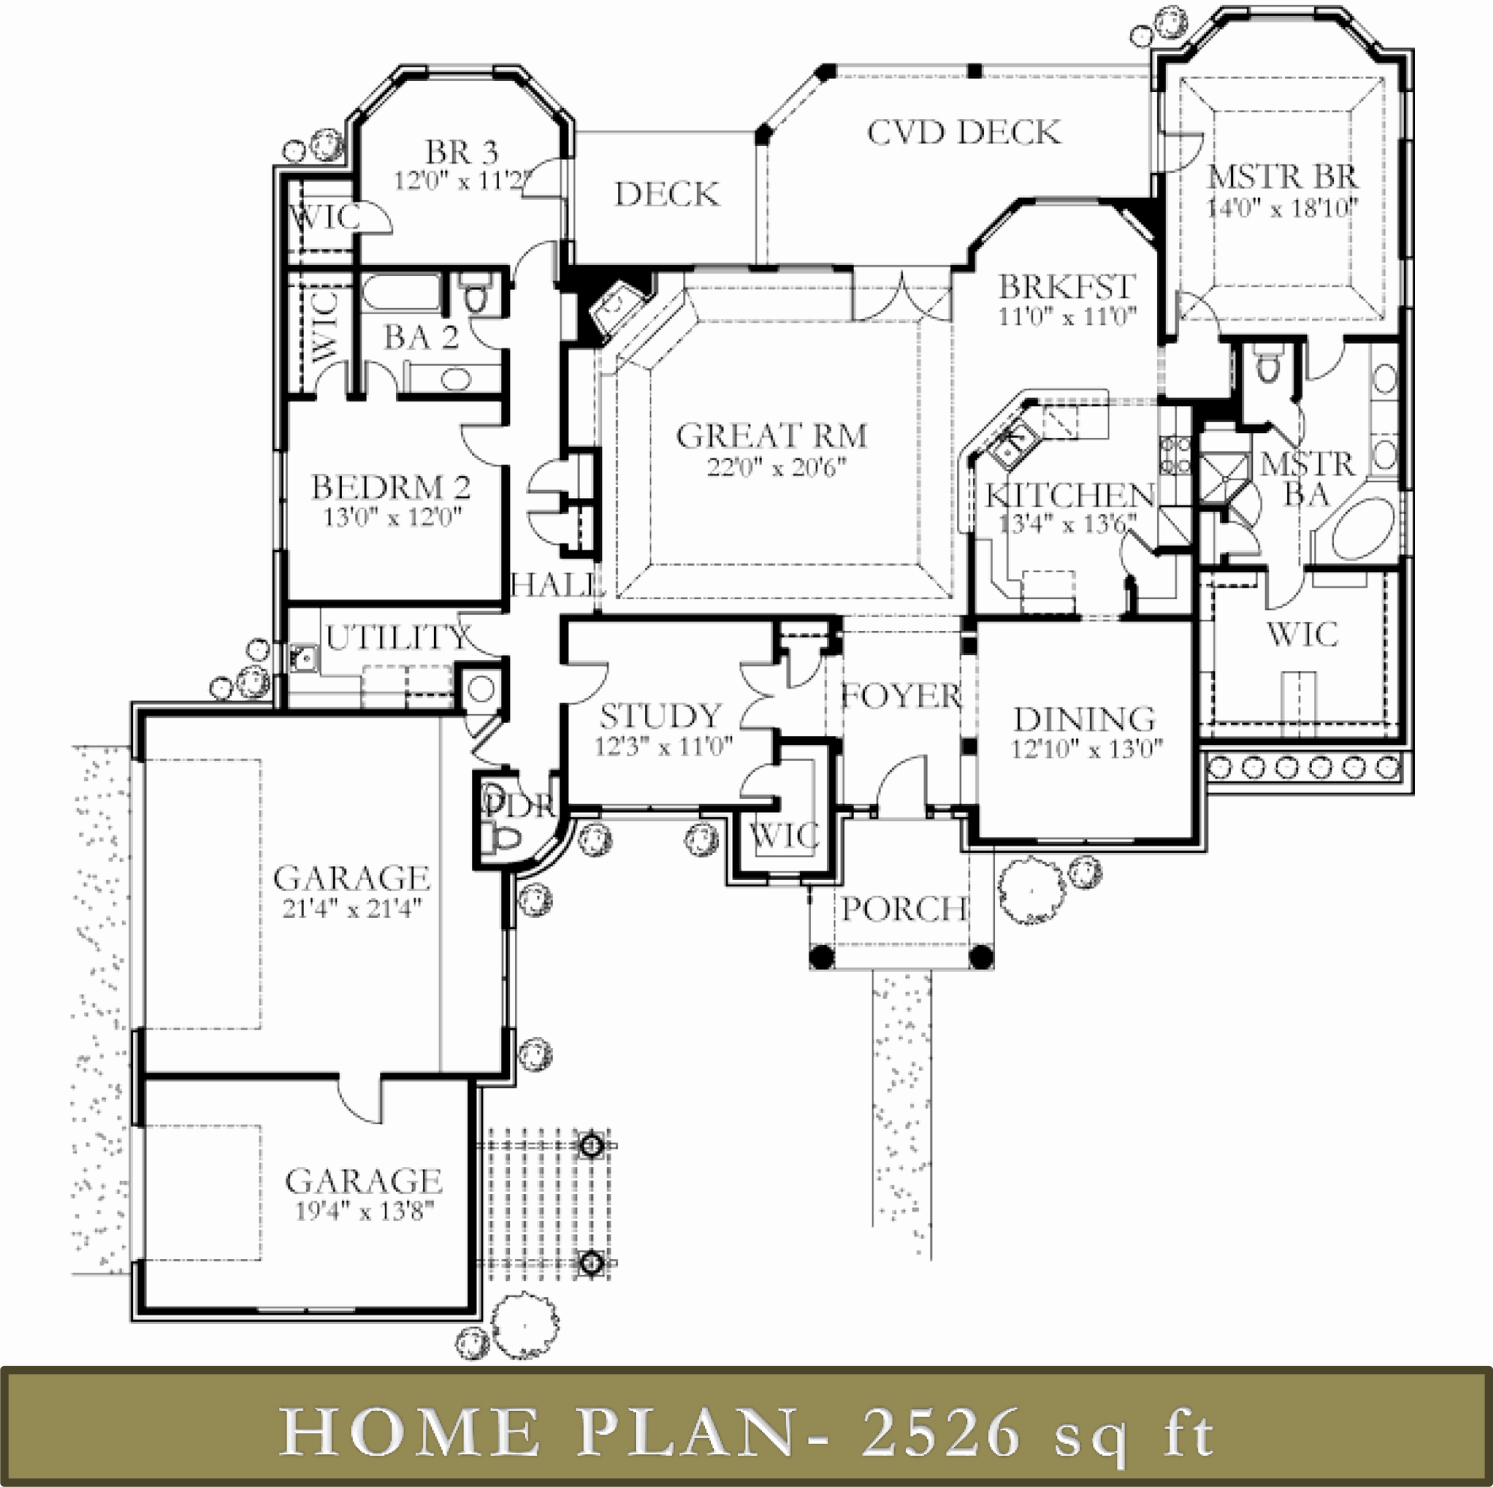 Floor plans 2500 to 3000 square feet for 2500 sq ft floor plans